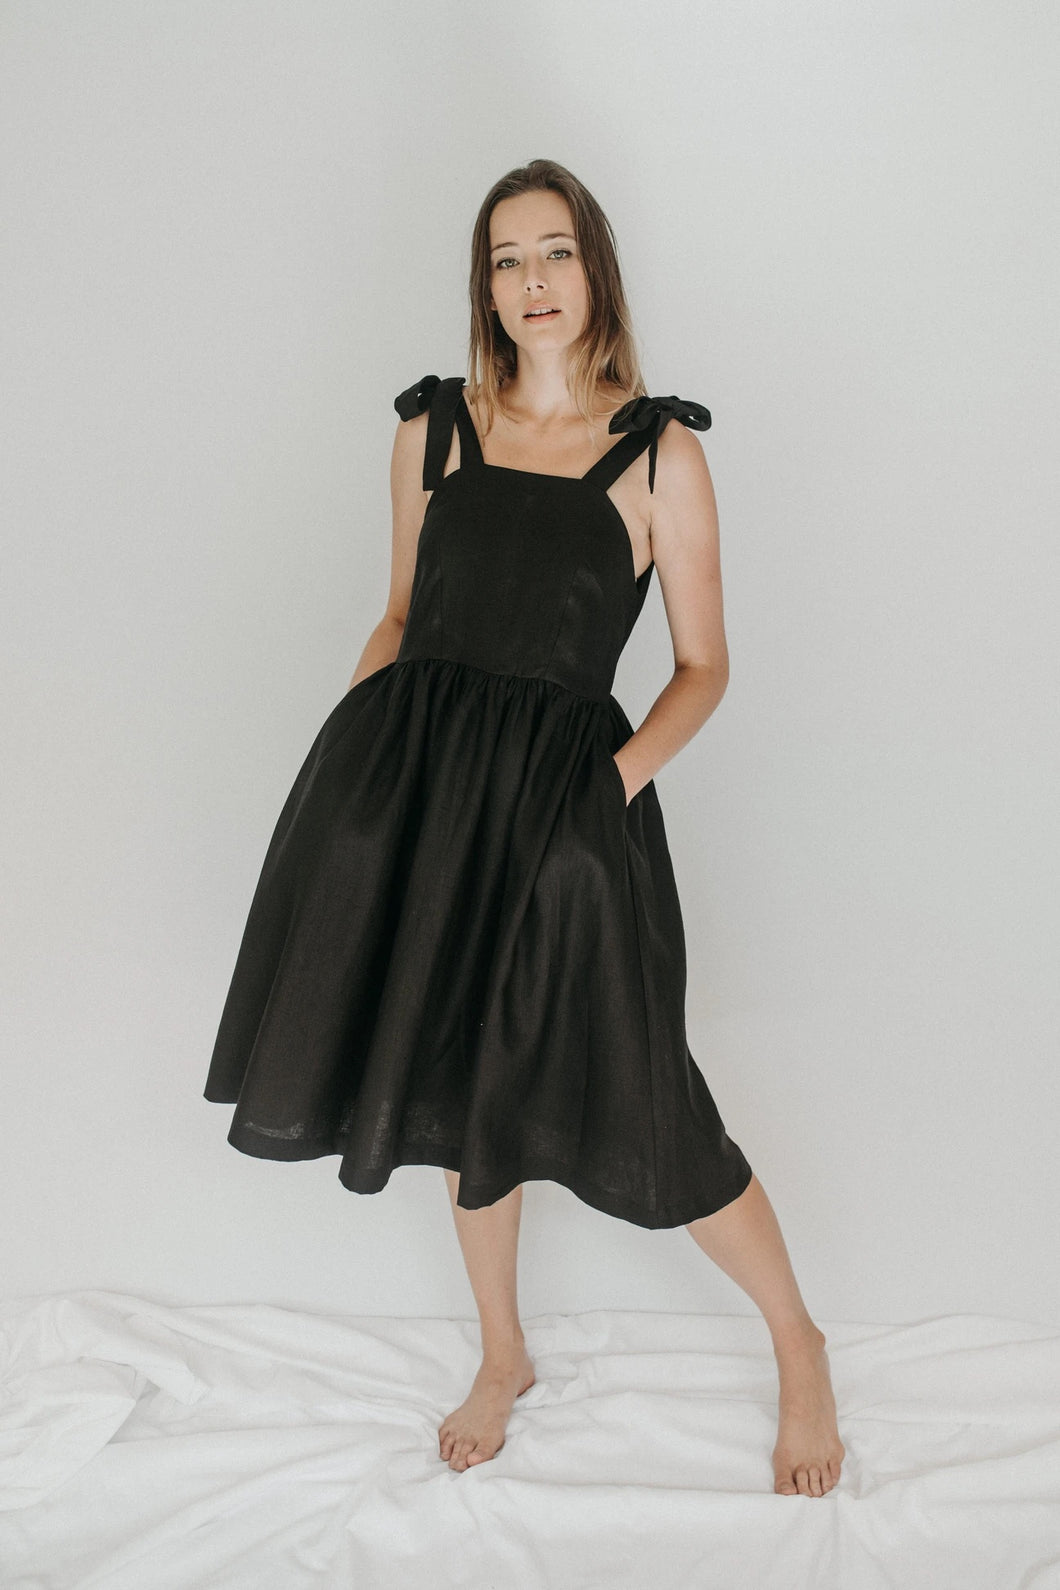 Calla Shoulder Tie Dress - Black Linen